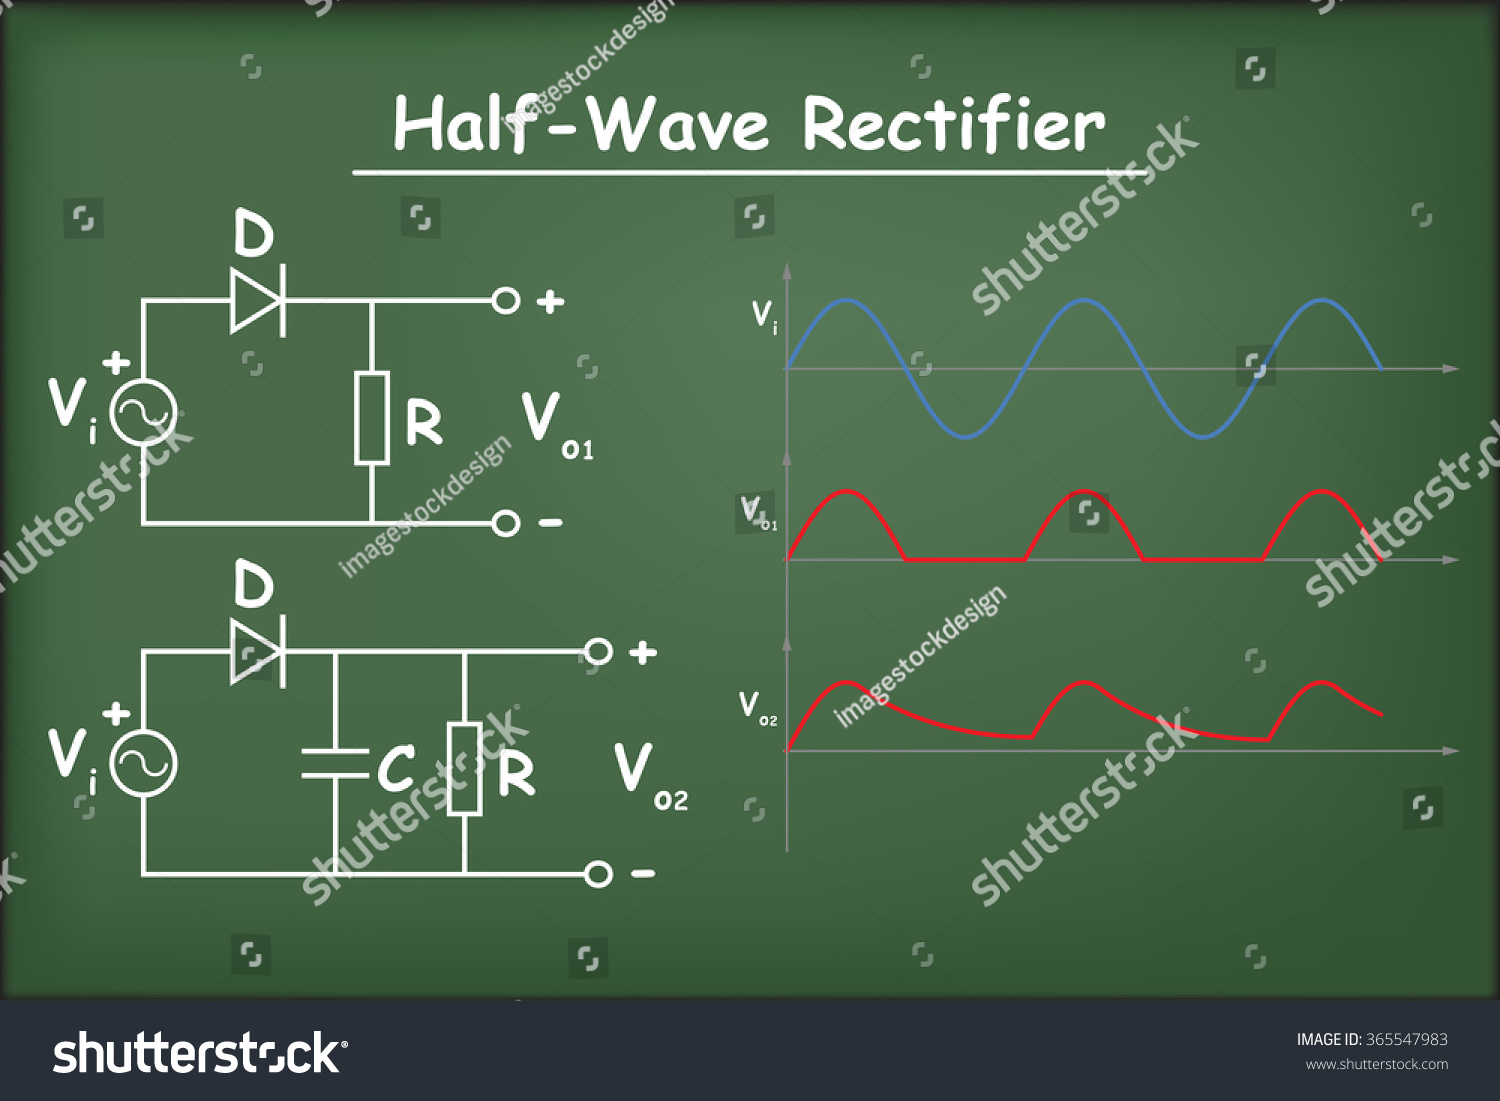 Half Wave Rectifier Circuits Capacitor Diagram Stock Vector Royalty Circuit With And On Chalkboard